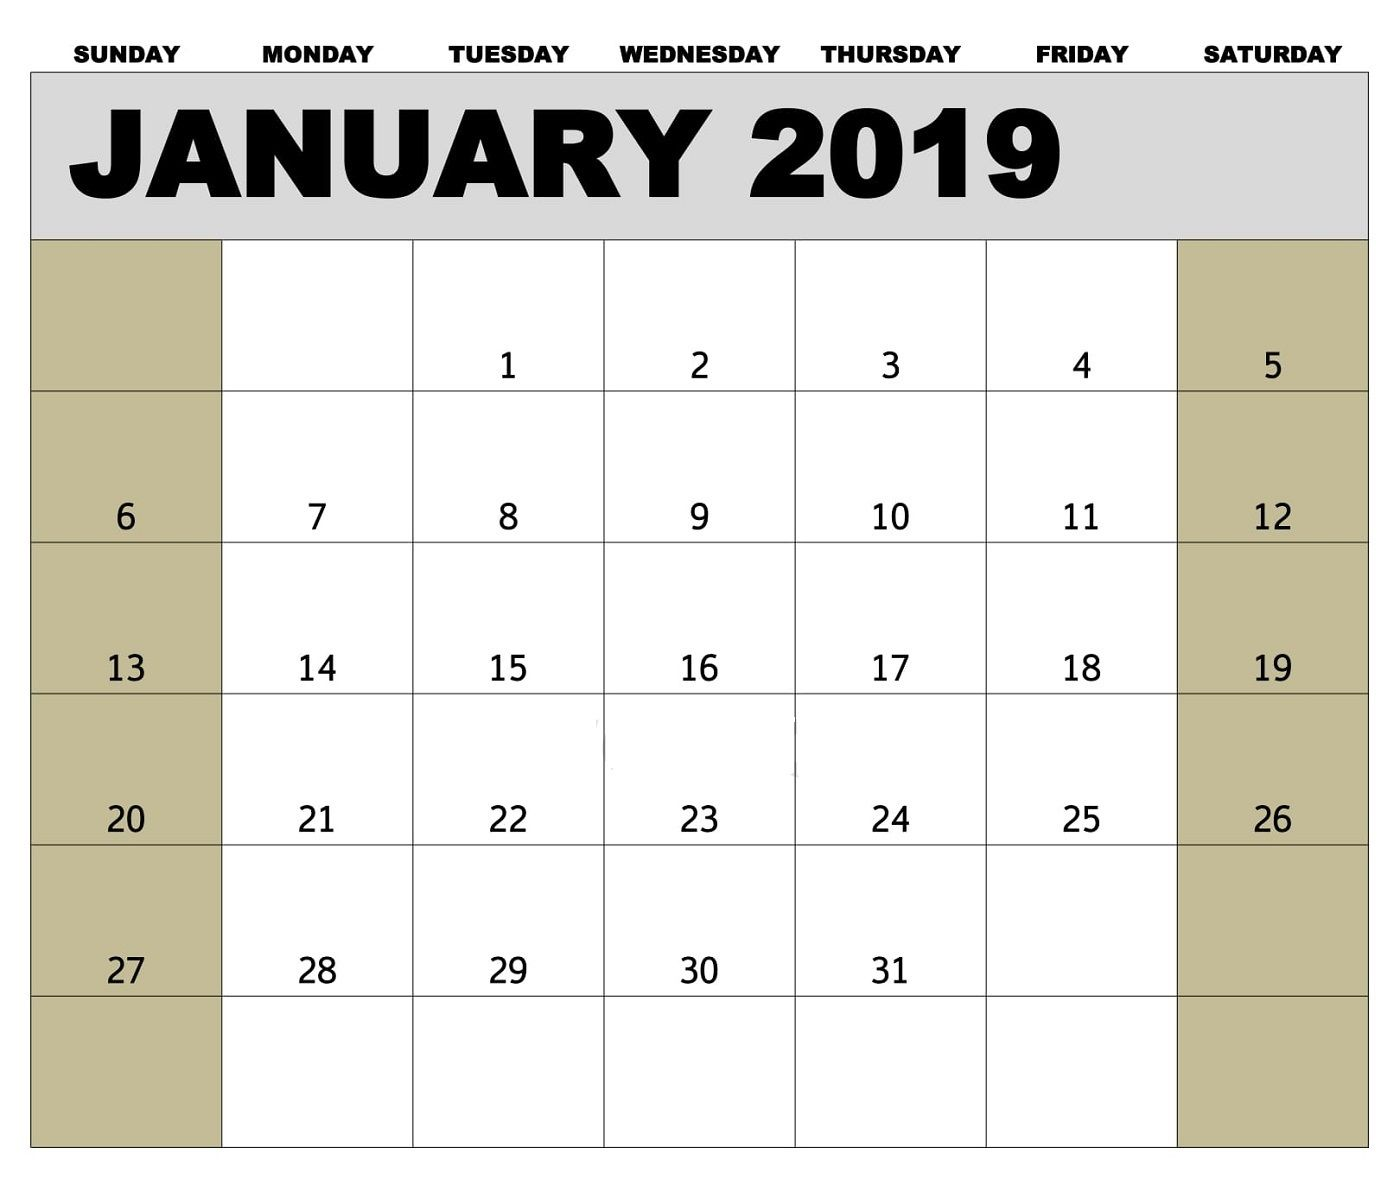 january 2019 biweekly payroll calendar template for employees